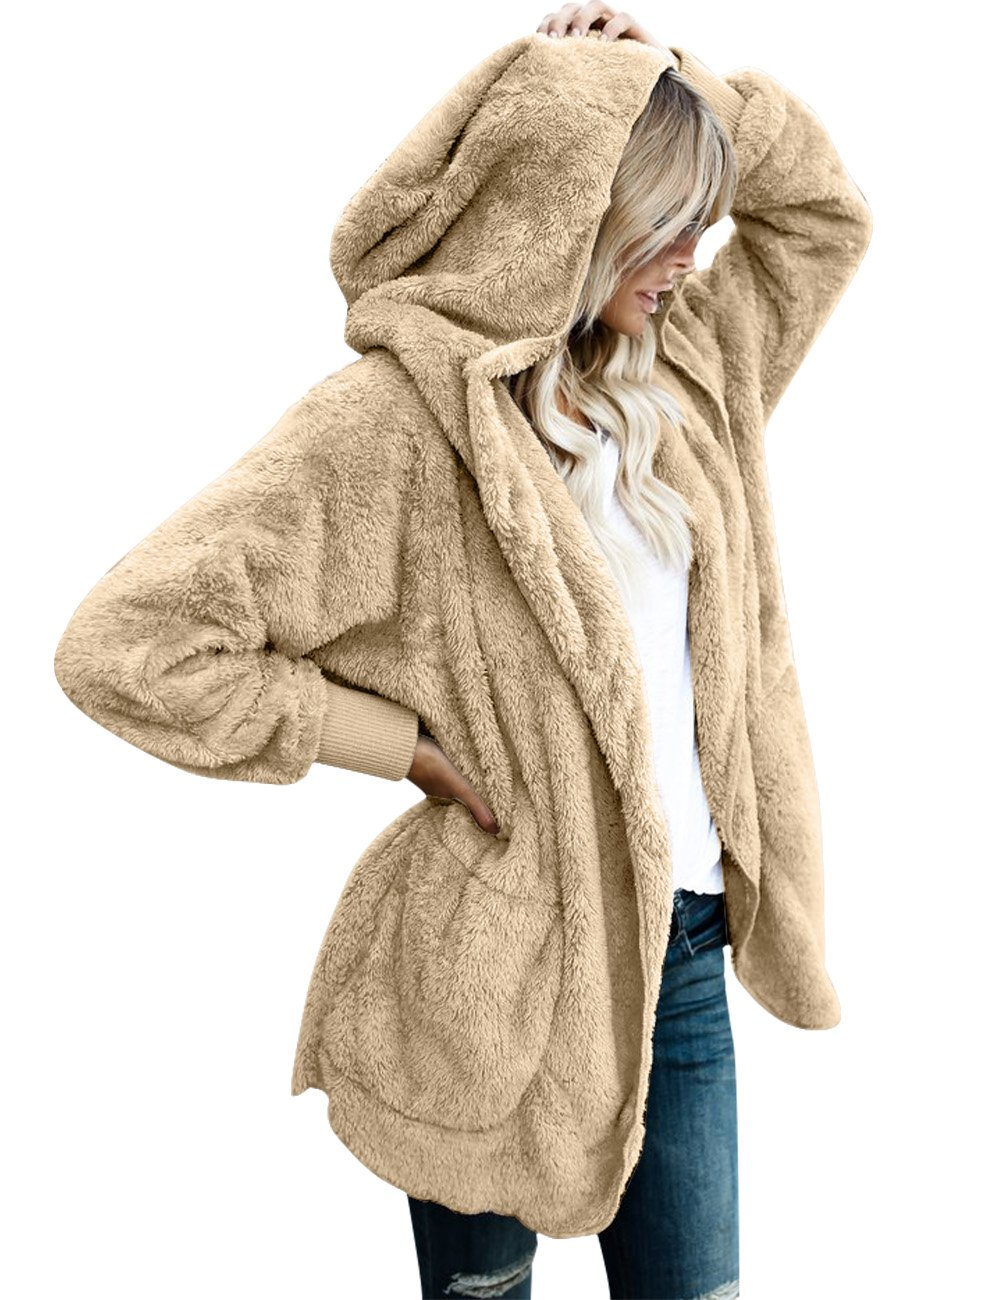 Lookbook Store Women's Oversized Open Front Hooded Draped Pocket Cardigan Coat Tan Size M (Fit US 8 - US 10)